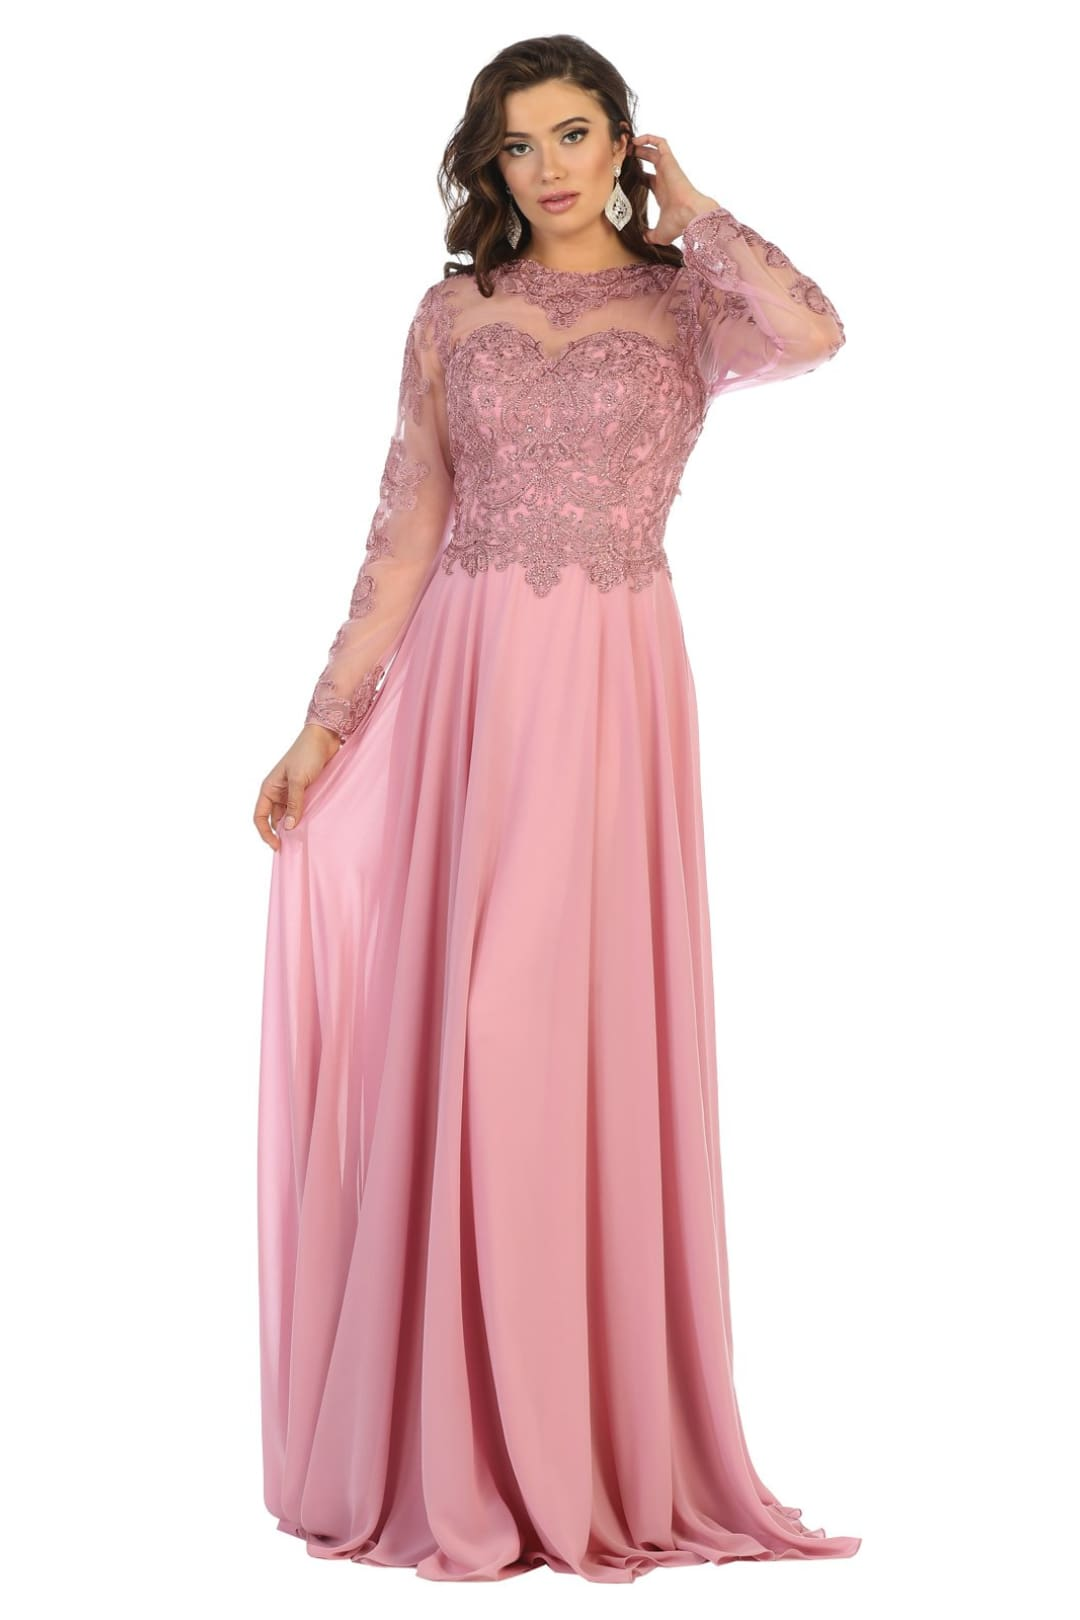 Lace Short Modern Mother/'s Formal Dresses Cocktail Prom Gown Evening Party M~4XL